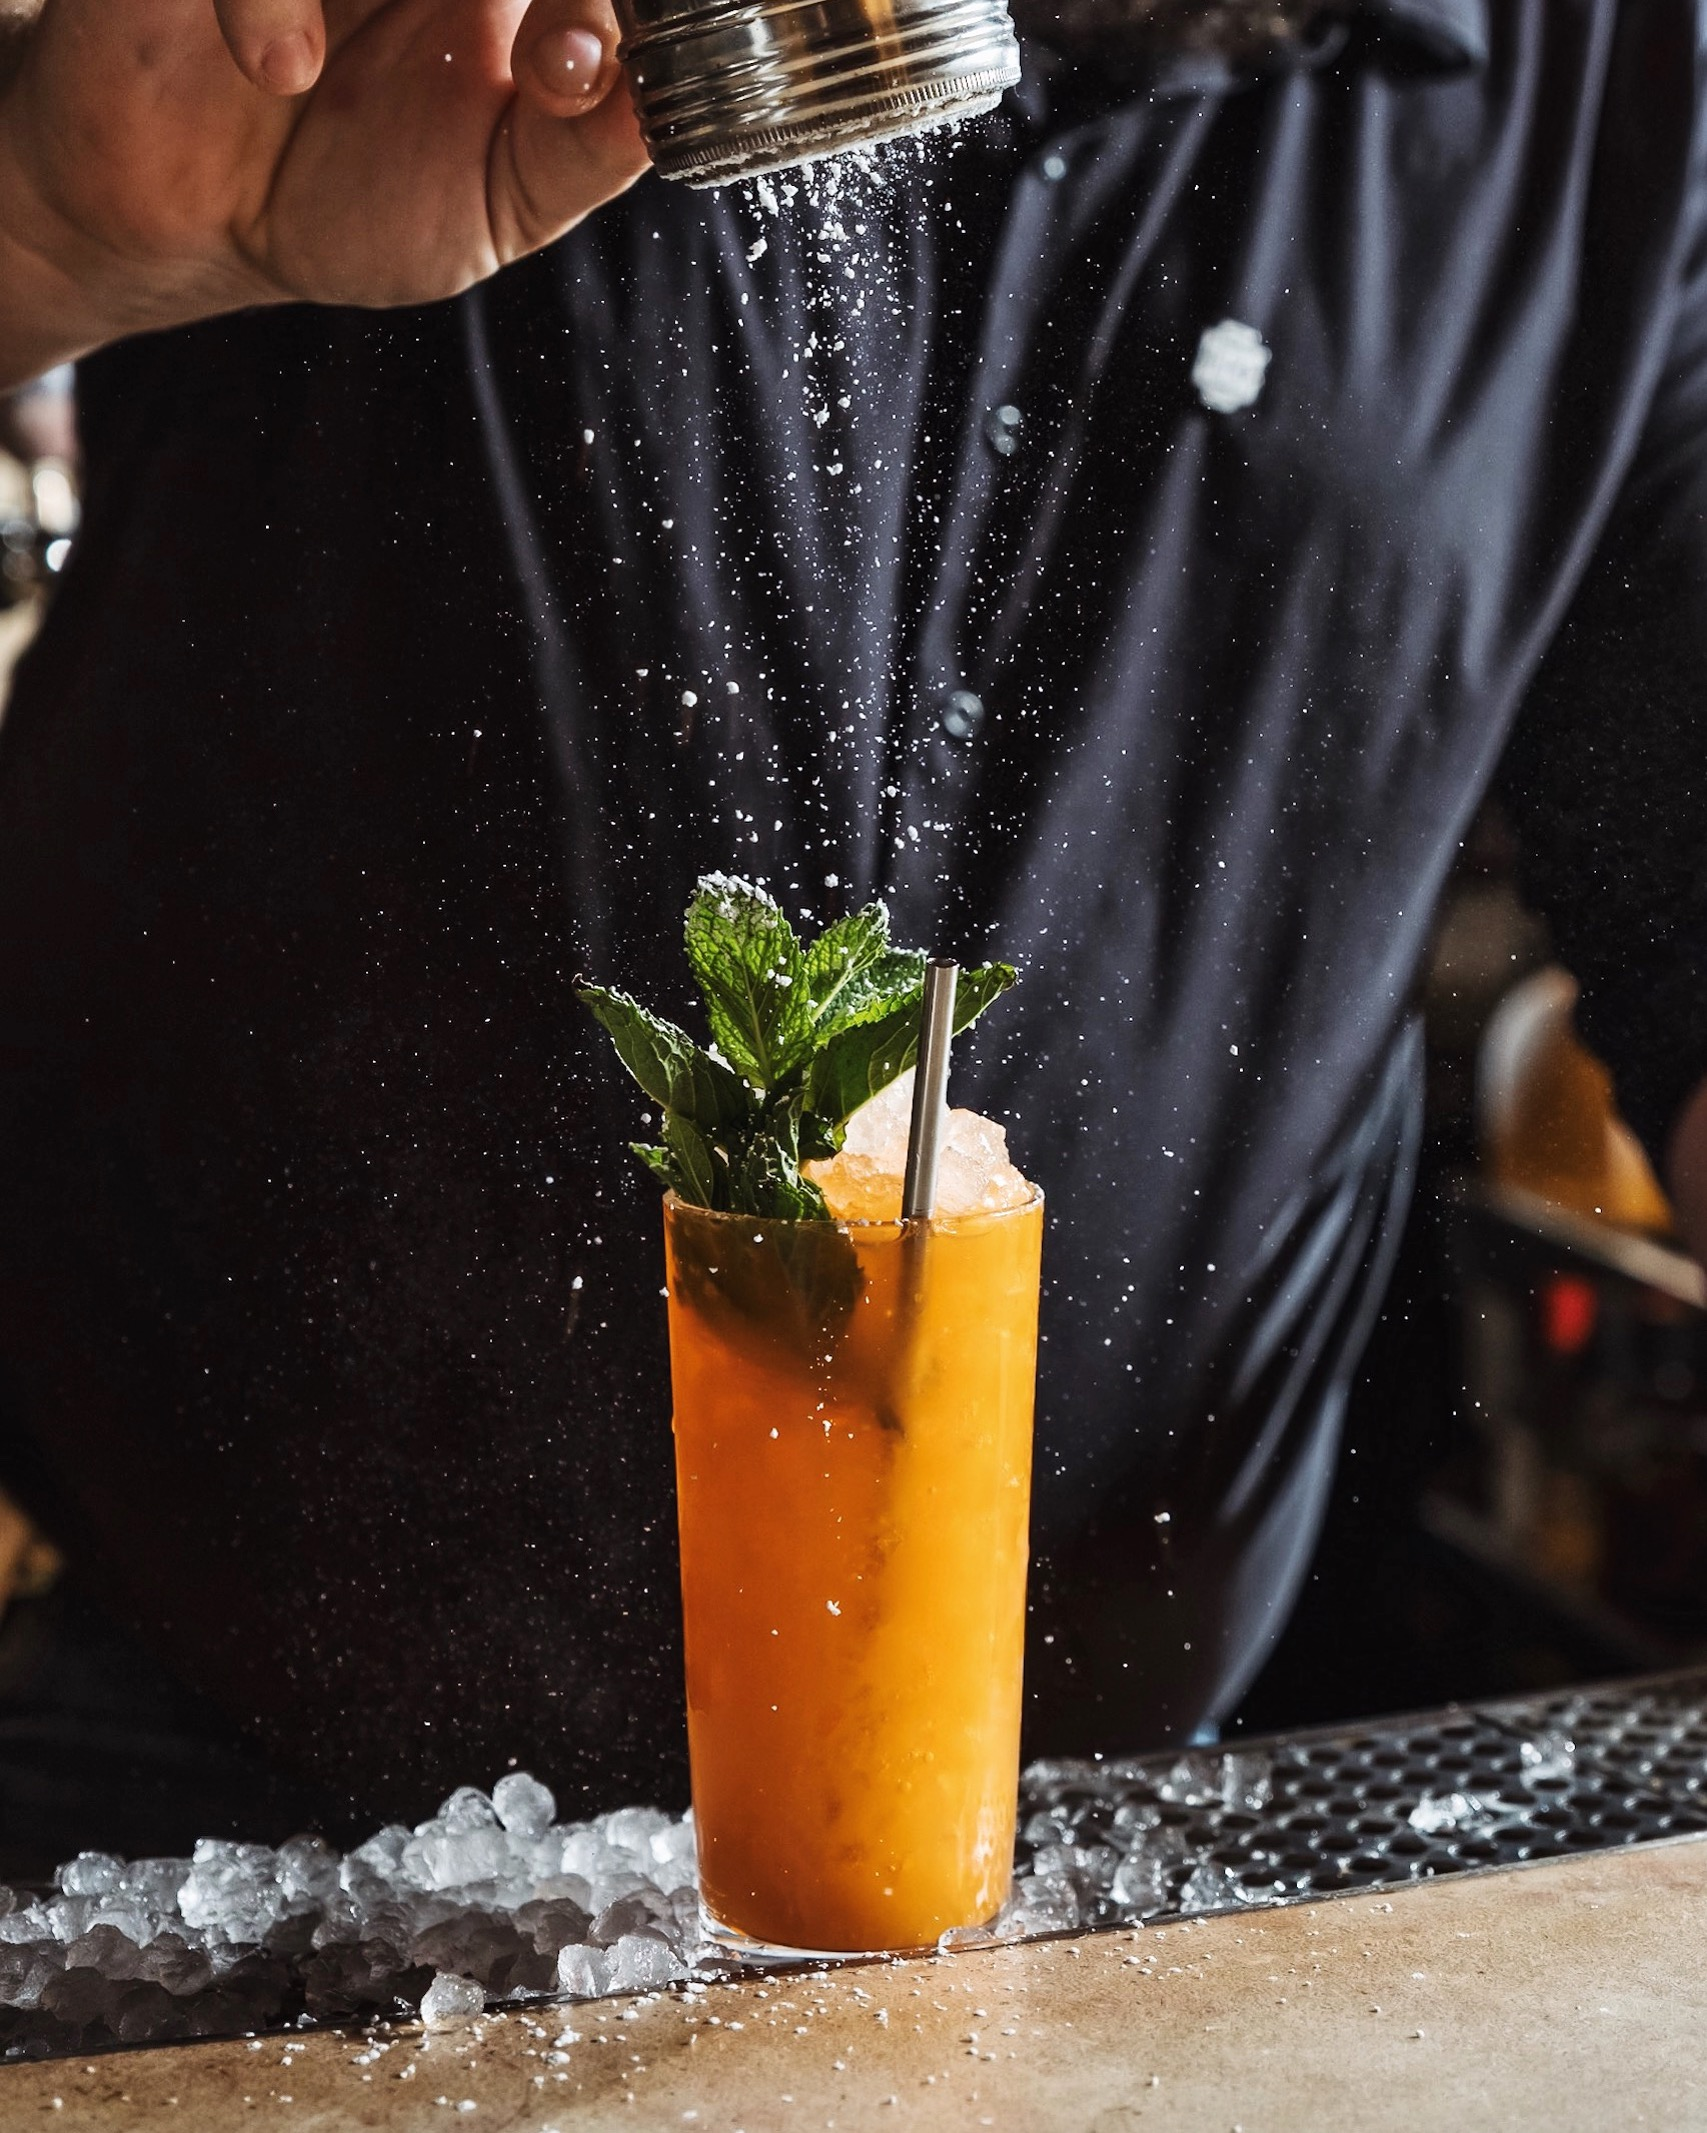 ingredients: - 1 ½ ounces Plymouth Gin¾ ounce carrot juice½ ounce lemon juice½ ounce Verde Momento Thai Chili Mezcal½ ounce mint syrup¼ ounce Velvet Falernum2 drops saline solutionFresh mint and powdered sugar, for garnish